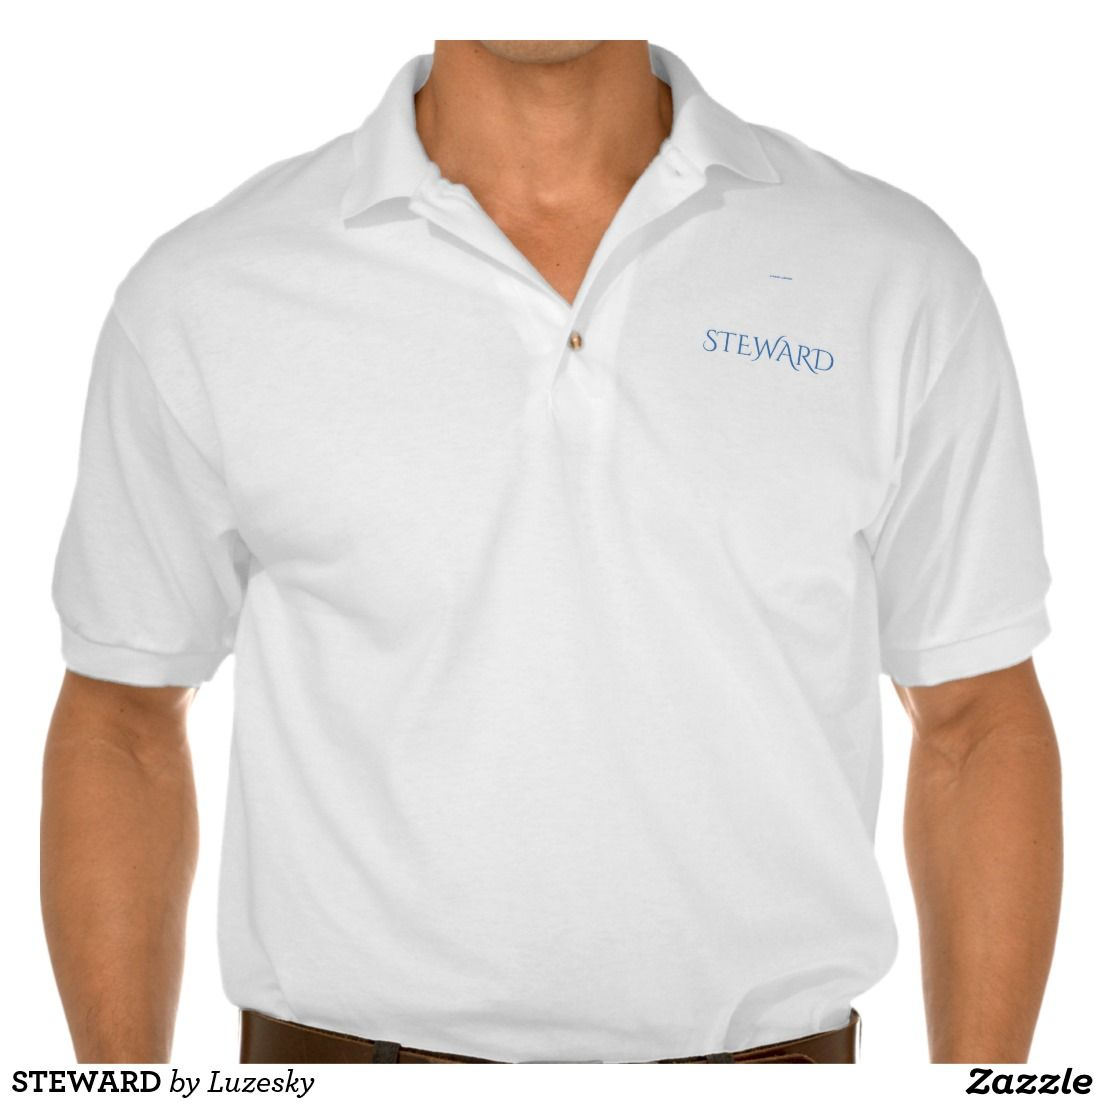 Create your own designs amp sell your design online shirts zazzle - Create Your Own Designs Amp Sell Your Design Online Shirts Zazzle 45